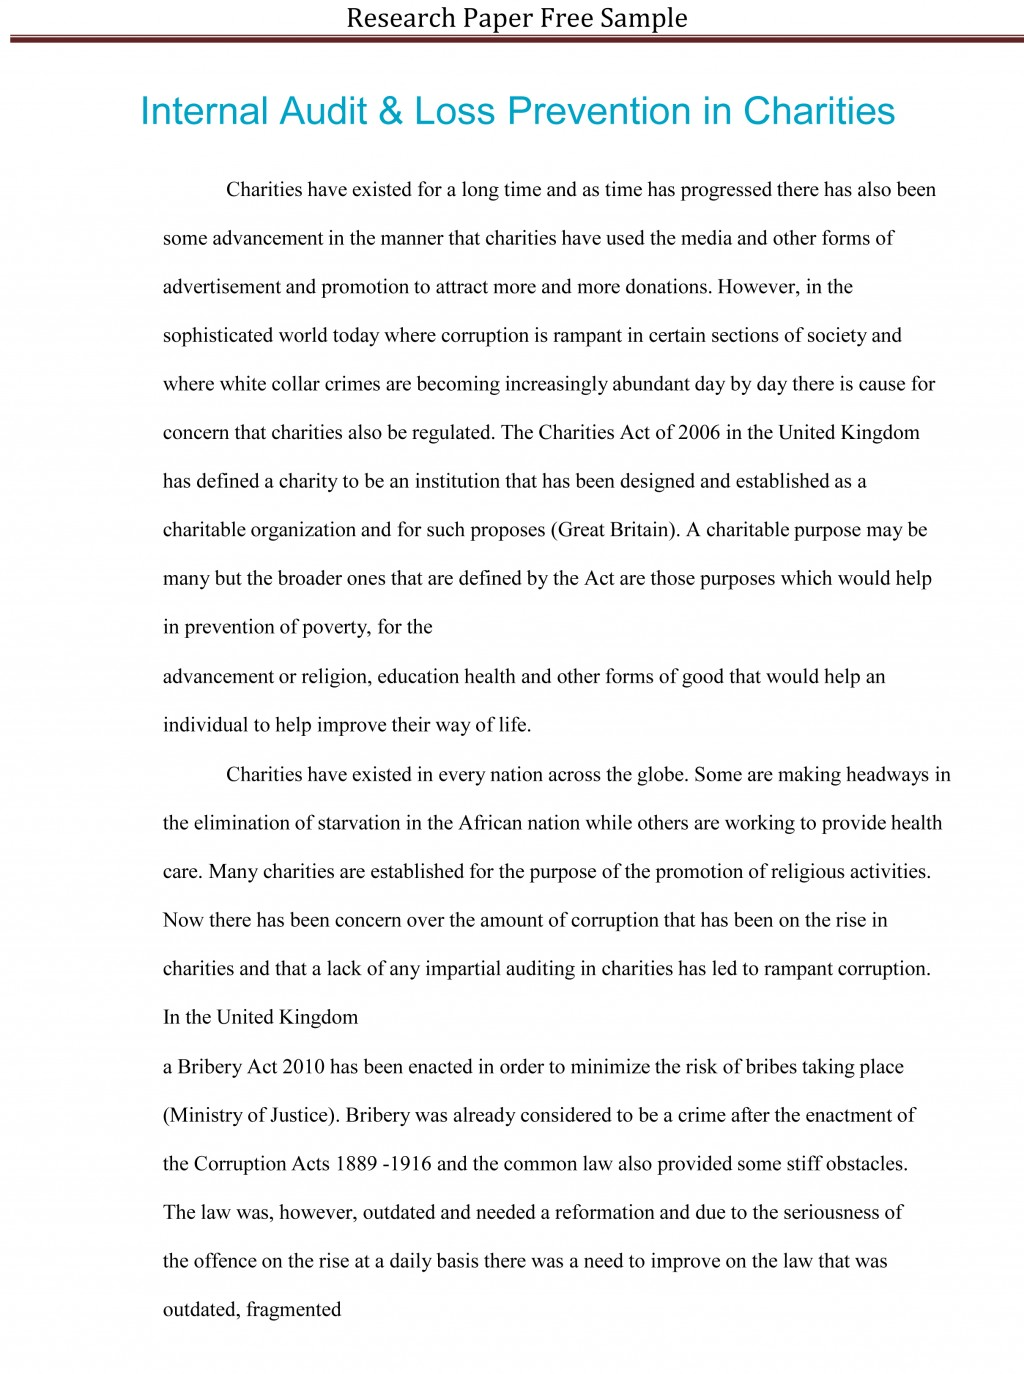 003 Research Paper Sample Academic Surprising Essays Large